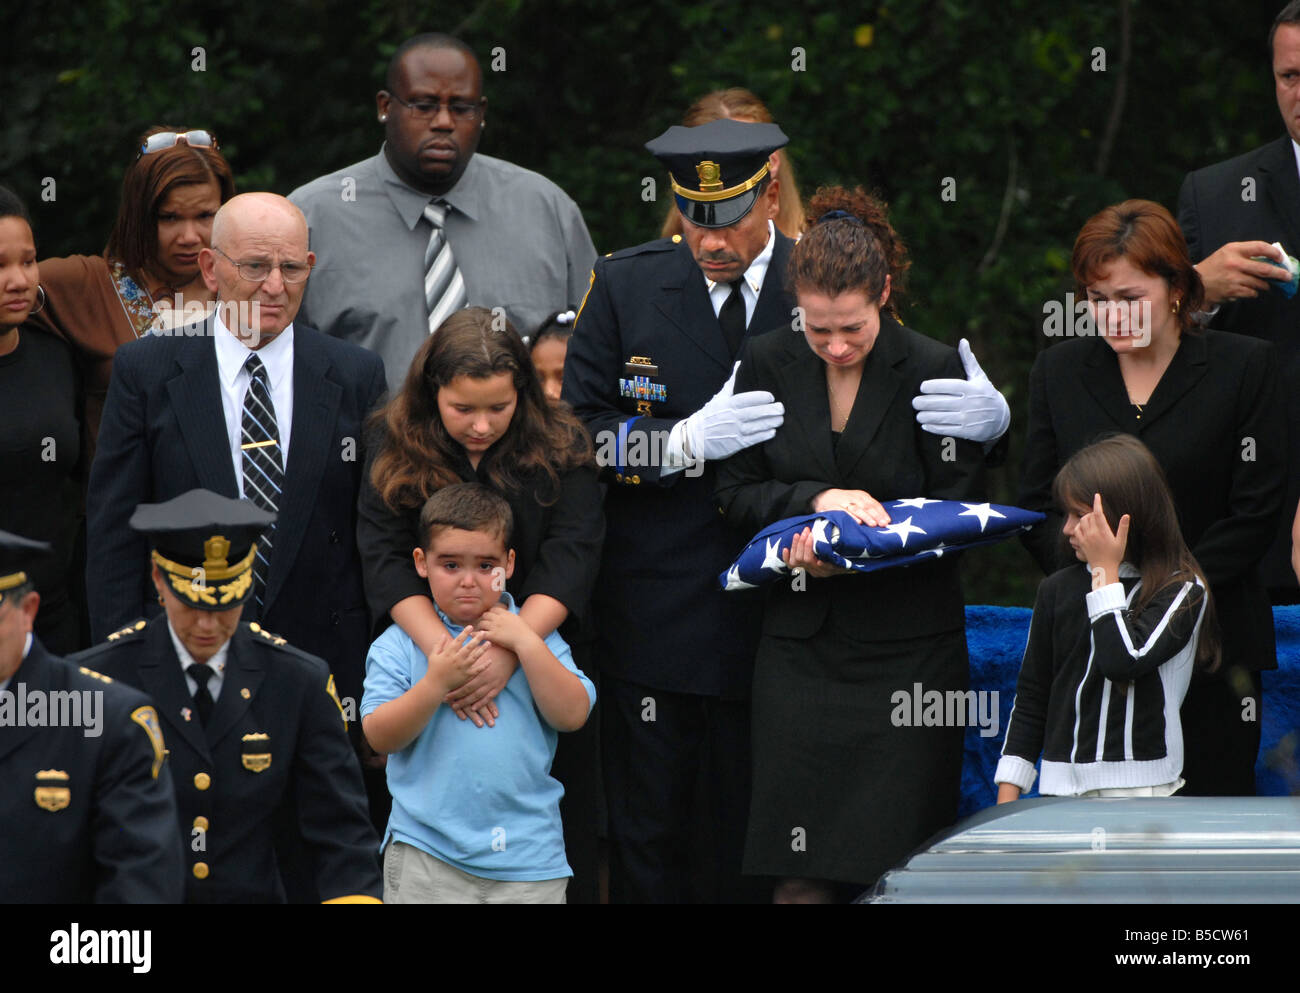 a police funeral with the family mourning after receiving the flag